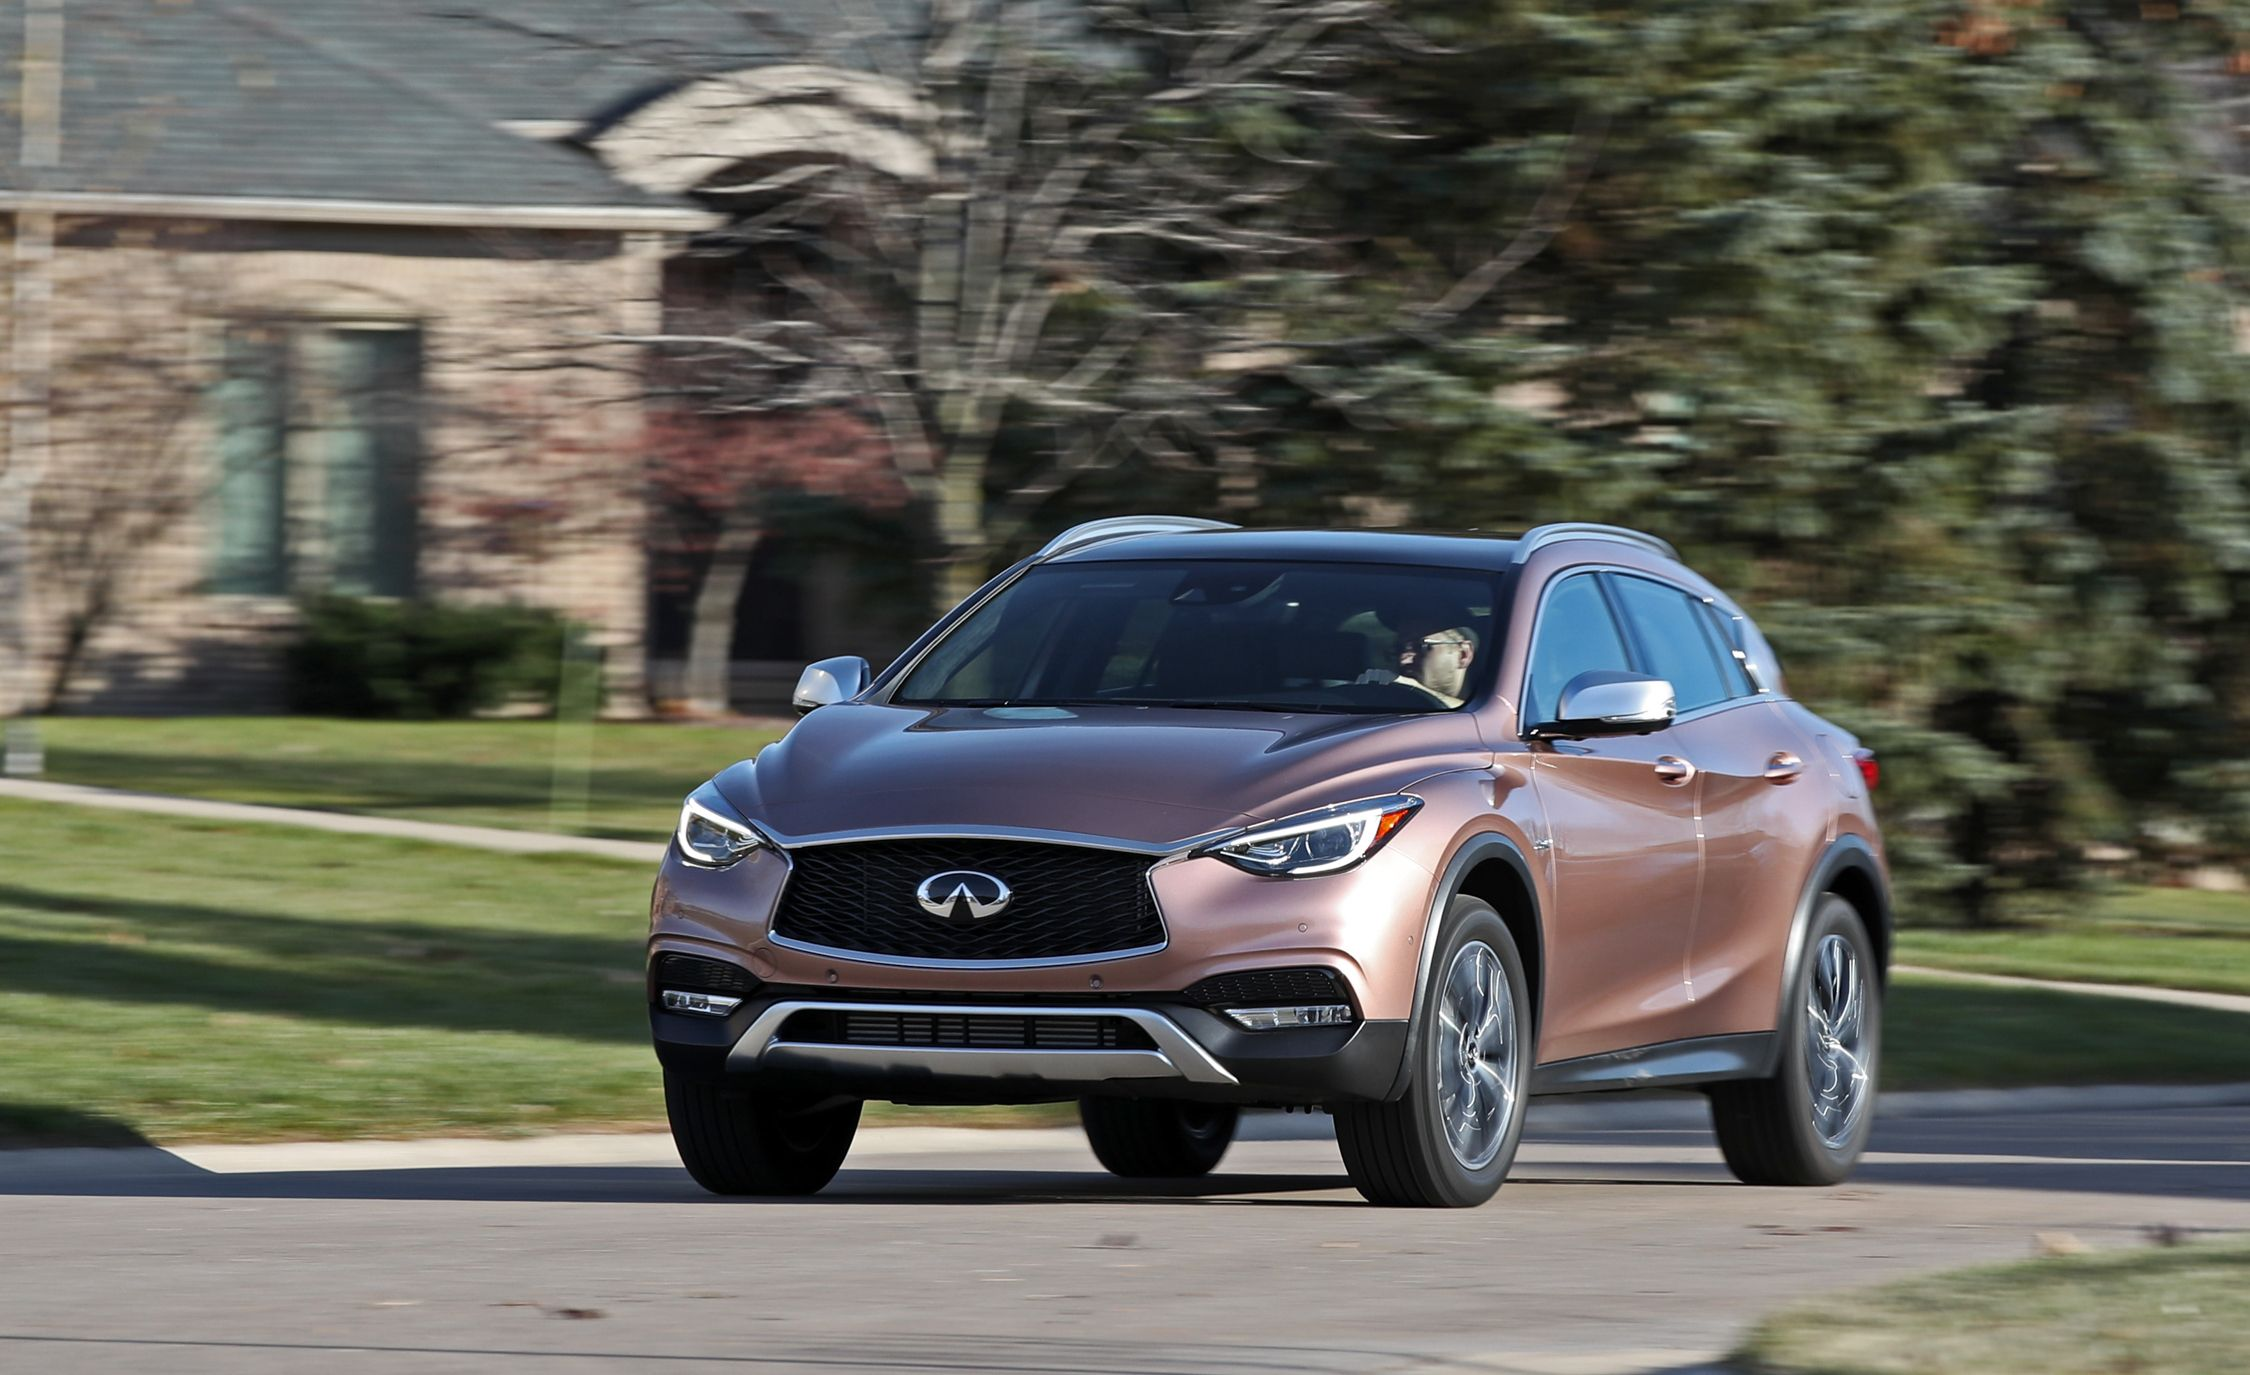 כולם חדשים 2019 Infiniti QX30 Reviews | Infiniti QX30 Price, Photos, and WB-57